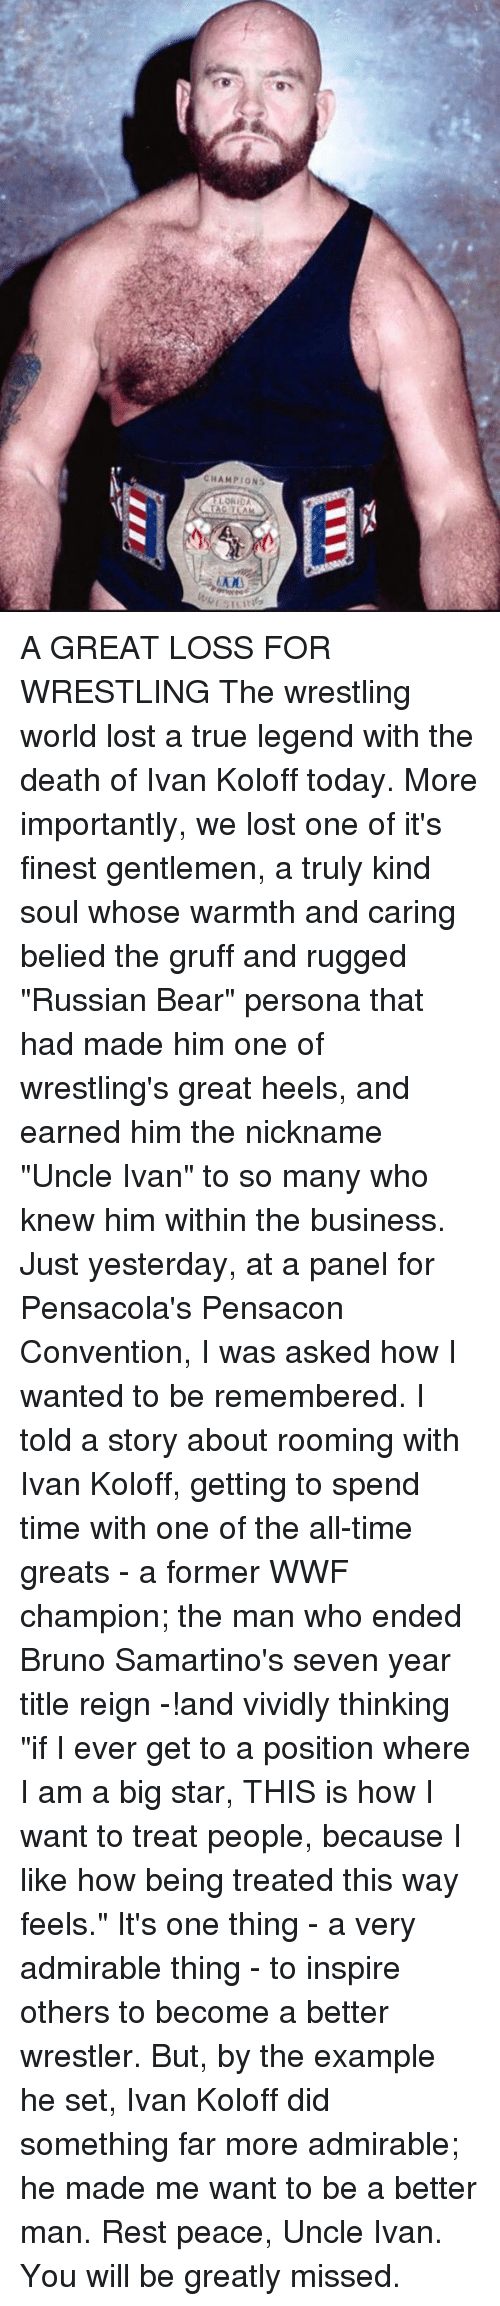 """Memes, True, and Wrestling: CHAMPIONS  LORIDA A GREAT LOSS FOR WRESTLING   The wrestling world lost a true legend with the death of Ivan Koloff today. More importantly, we lost one of it's finest gentlemen, a truly kind soul whose warmth and caring belied the gruff and rugged """"Russian Bear"""" persona that had made him one of wrestling's great heels, and earned him the nickname """"Uncle Ivan"""" to so many who knew him within the business.  Just yesterday, at a panel for Pensacola's Pensacon Convention, I was asked how I wanted to be remembered. I told a story about rooming with Ivan Koloff, getting to spend time with one of the all-time greats - a former WWF champion; the man who ended Bruno Samartino's seven year title reign -!and vividly thinking """"if I ever get to a position where I am a big star, THIS is how I want to treat people, because I like how being treated this way feels."""" It's one thing - a very admirable thing - to inspire others to become a better wrestler. But, by the example he set, Ivan Koloff did something far more admirable; he made me want to be a better man. Rest peace, Uncle Ivan. You will be greatly missed."""